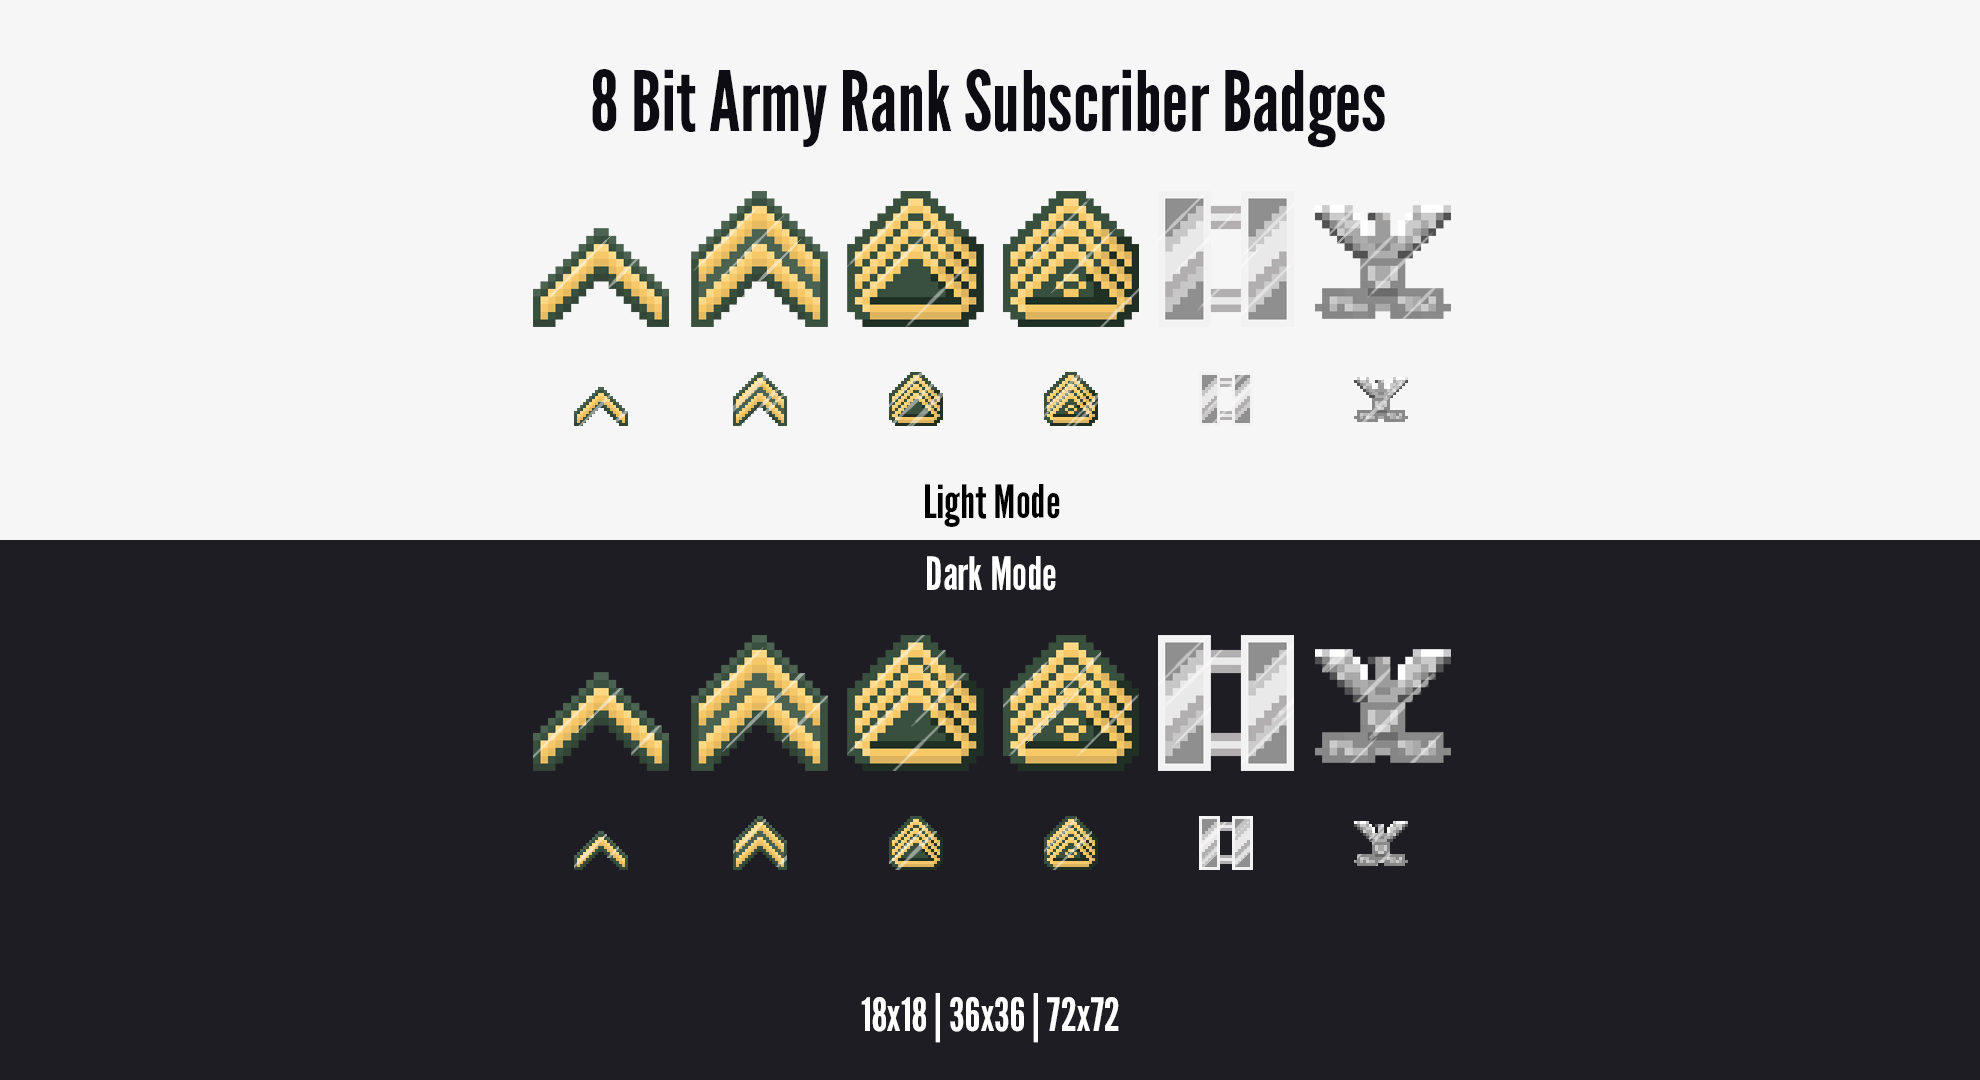 8 Bit Army Rank Subscriber Badges for Twitch! Up your stream quality with these pixel-based subscriber badges by LD Designs.    #twitchaffiliate #twitchsubbadges #twitchemotes #twitchpanels #twitchoverlay #pixelart #8bit  #army #ranks #emotes #twitchcreative #digitalart #pixelgram #pixel_ig #pixel_dailies #pixeleffect #minecraft